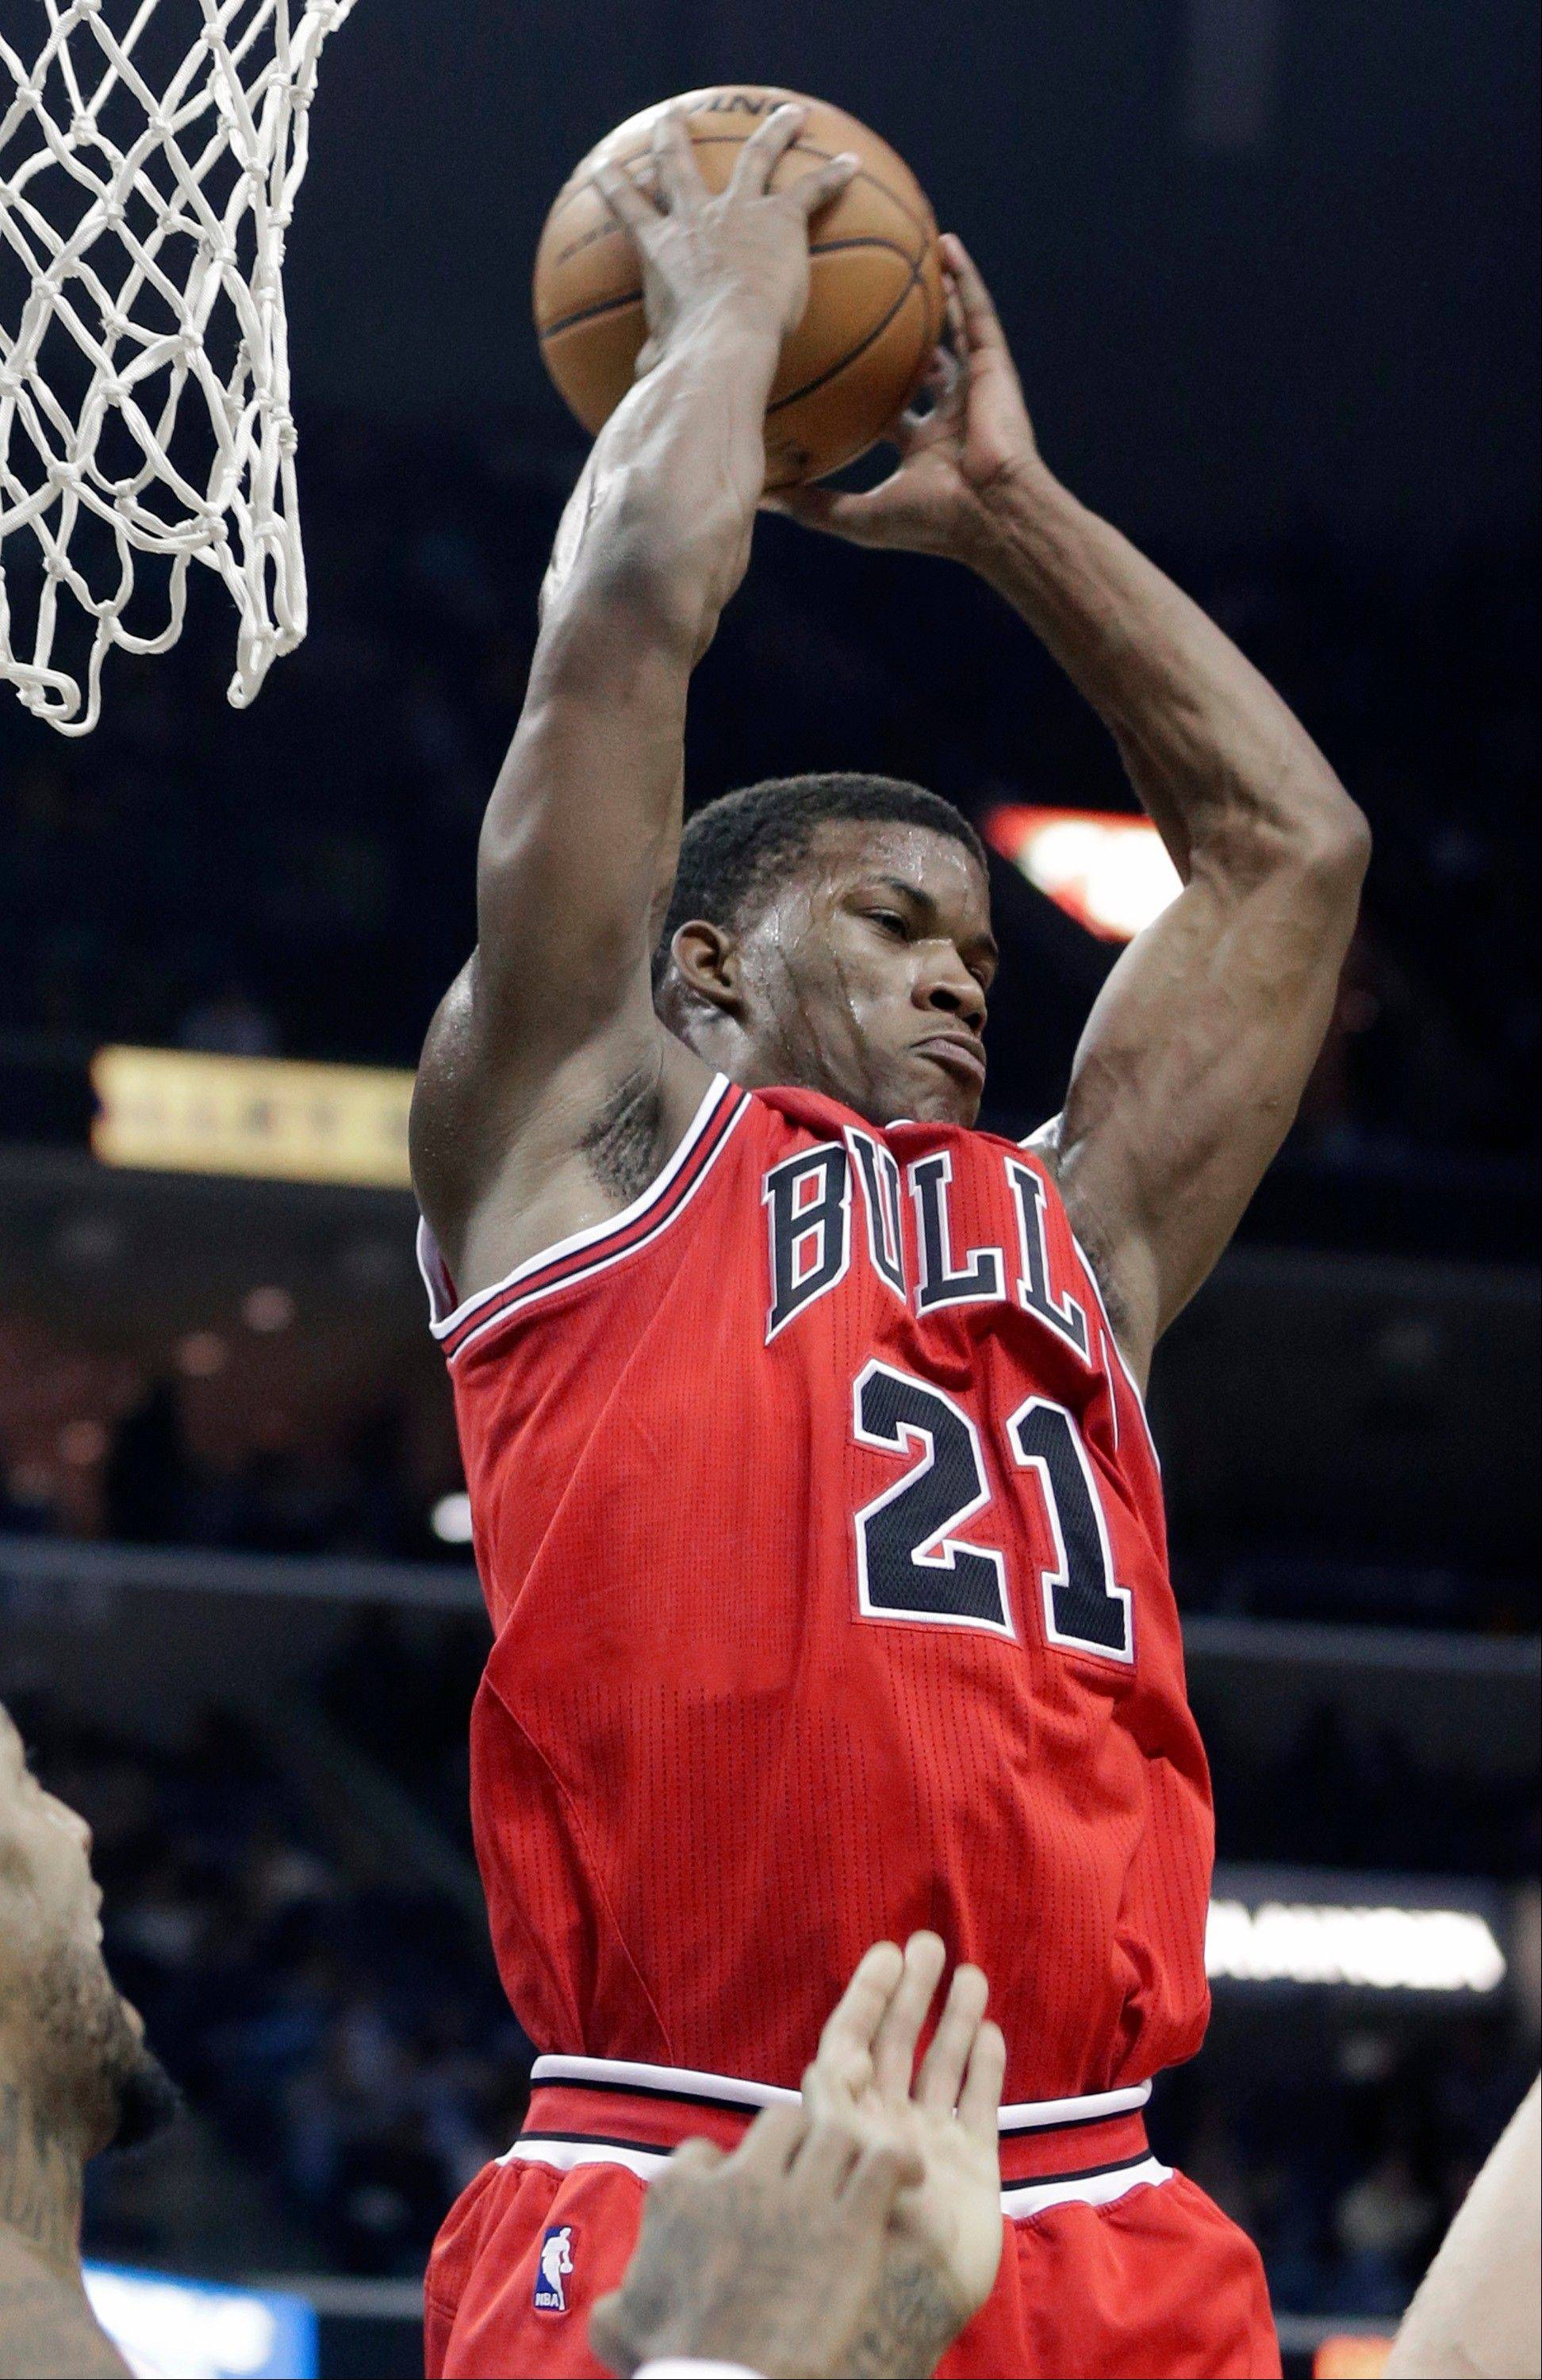 The Bulls' Jimmy Butler, who aggravated a toe injury two nights earlier, scored a season-high 26 points in Monday's victory over the Grizzlies.